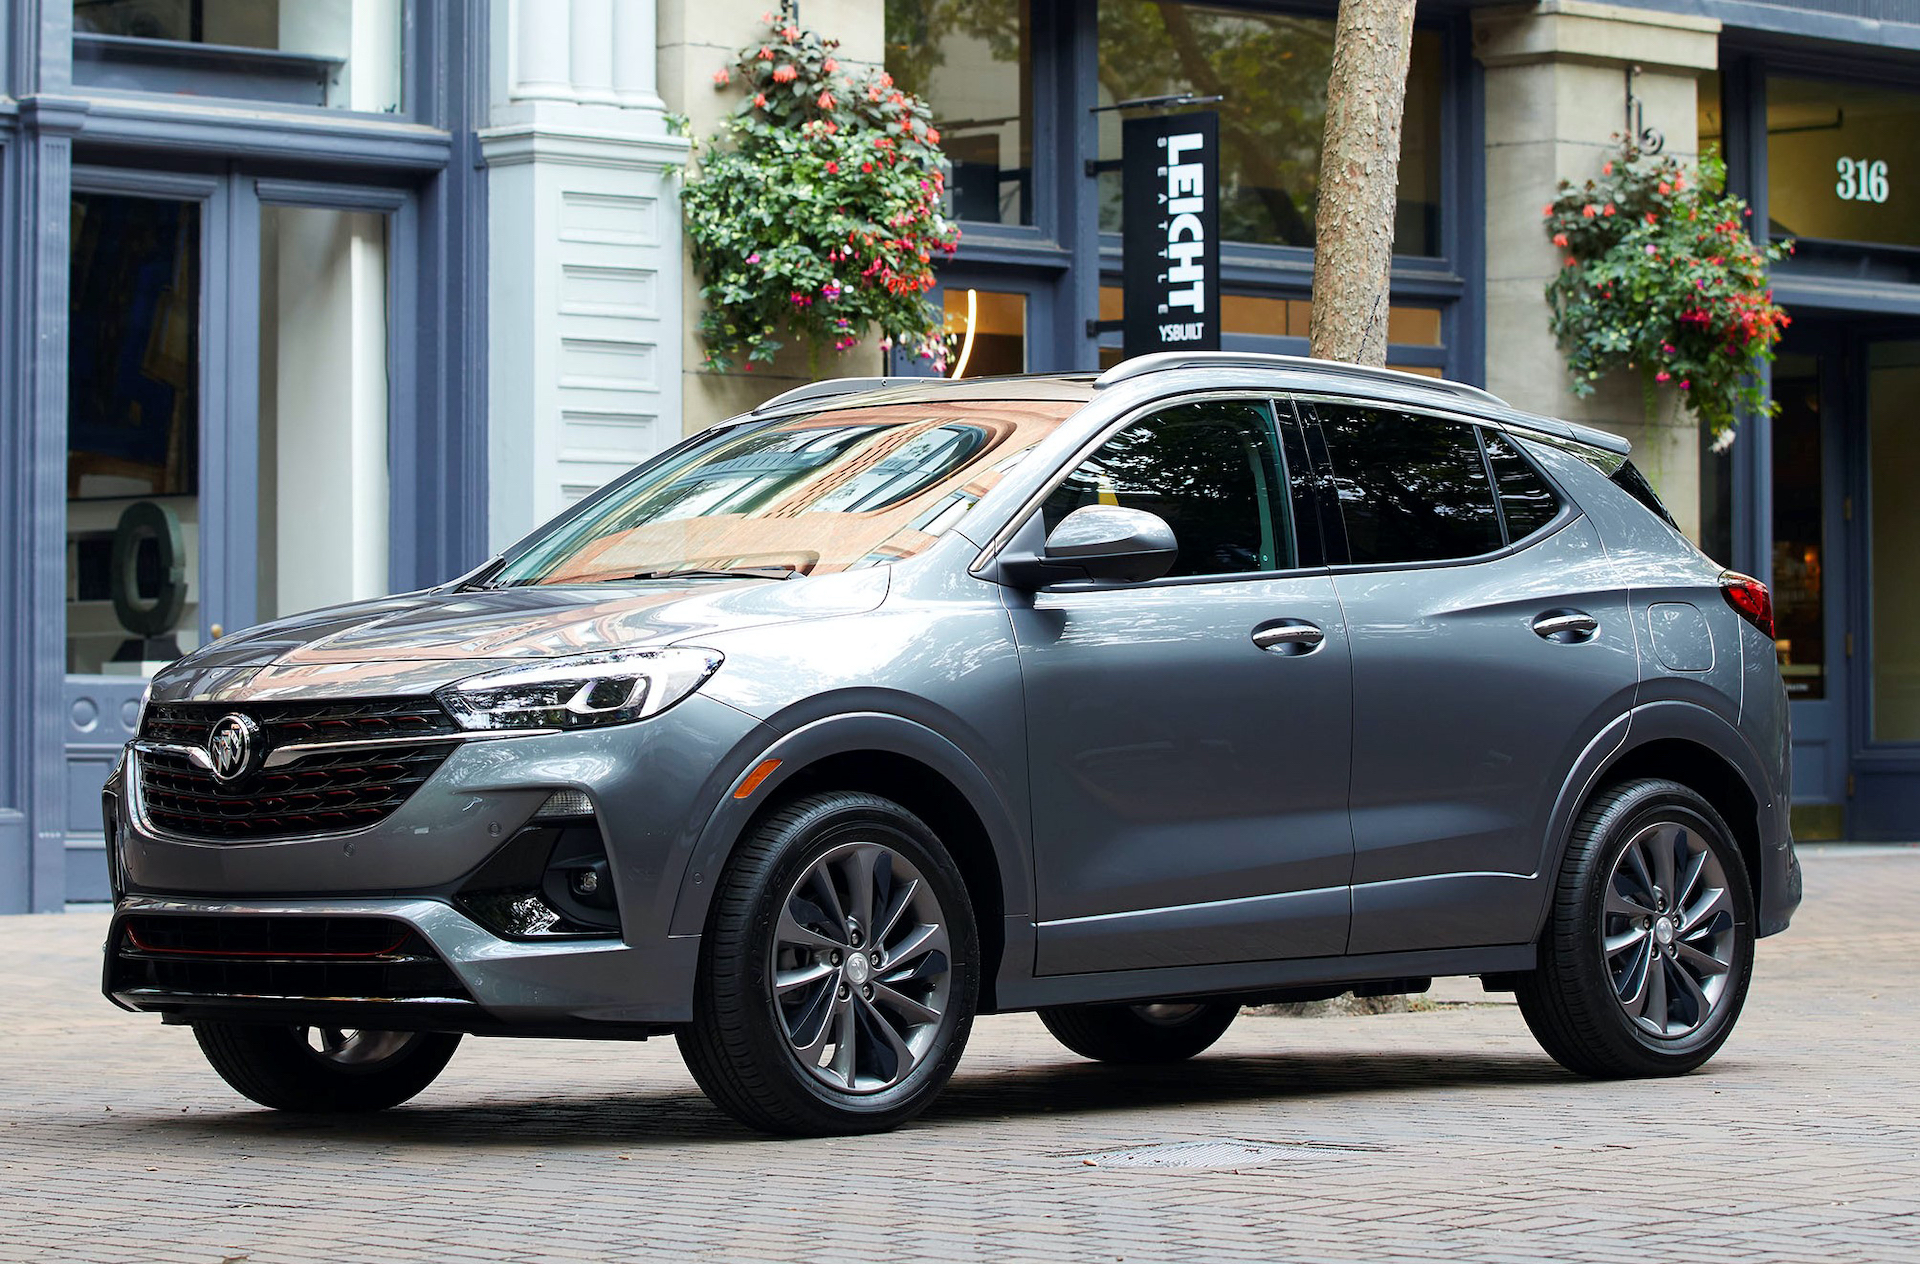 2021 Buick Encore Review, Ratings, Specs, Prices, And Photos New 2021 Buick Encore Msrp, Models, Manual